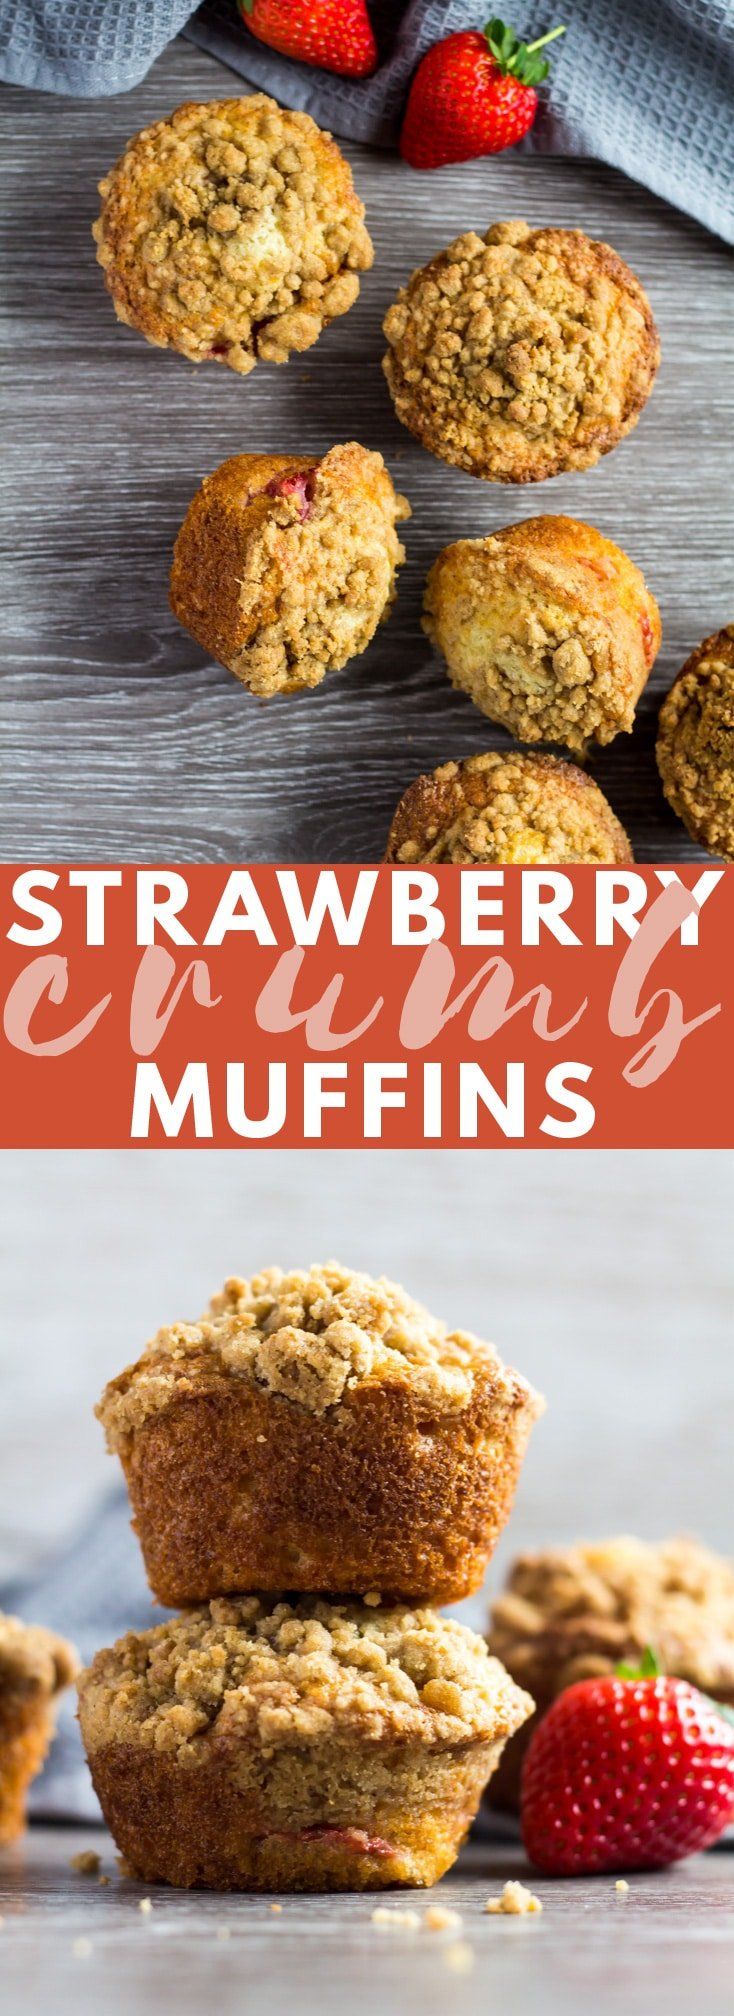 Strawberry Crumb Muffins - Deliciously moist and fluffy vanilla-infused muffins loaded with fresh strawberries, and topped with a buttery cinnamon streusel!